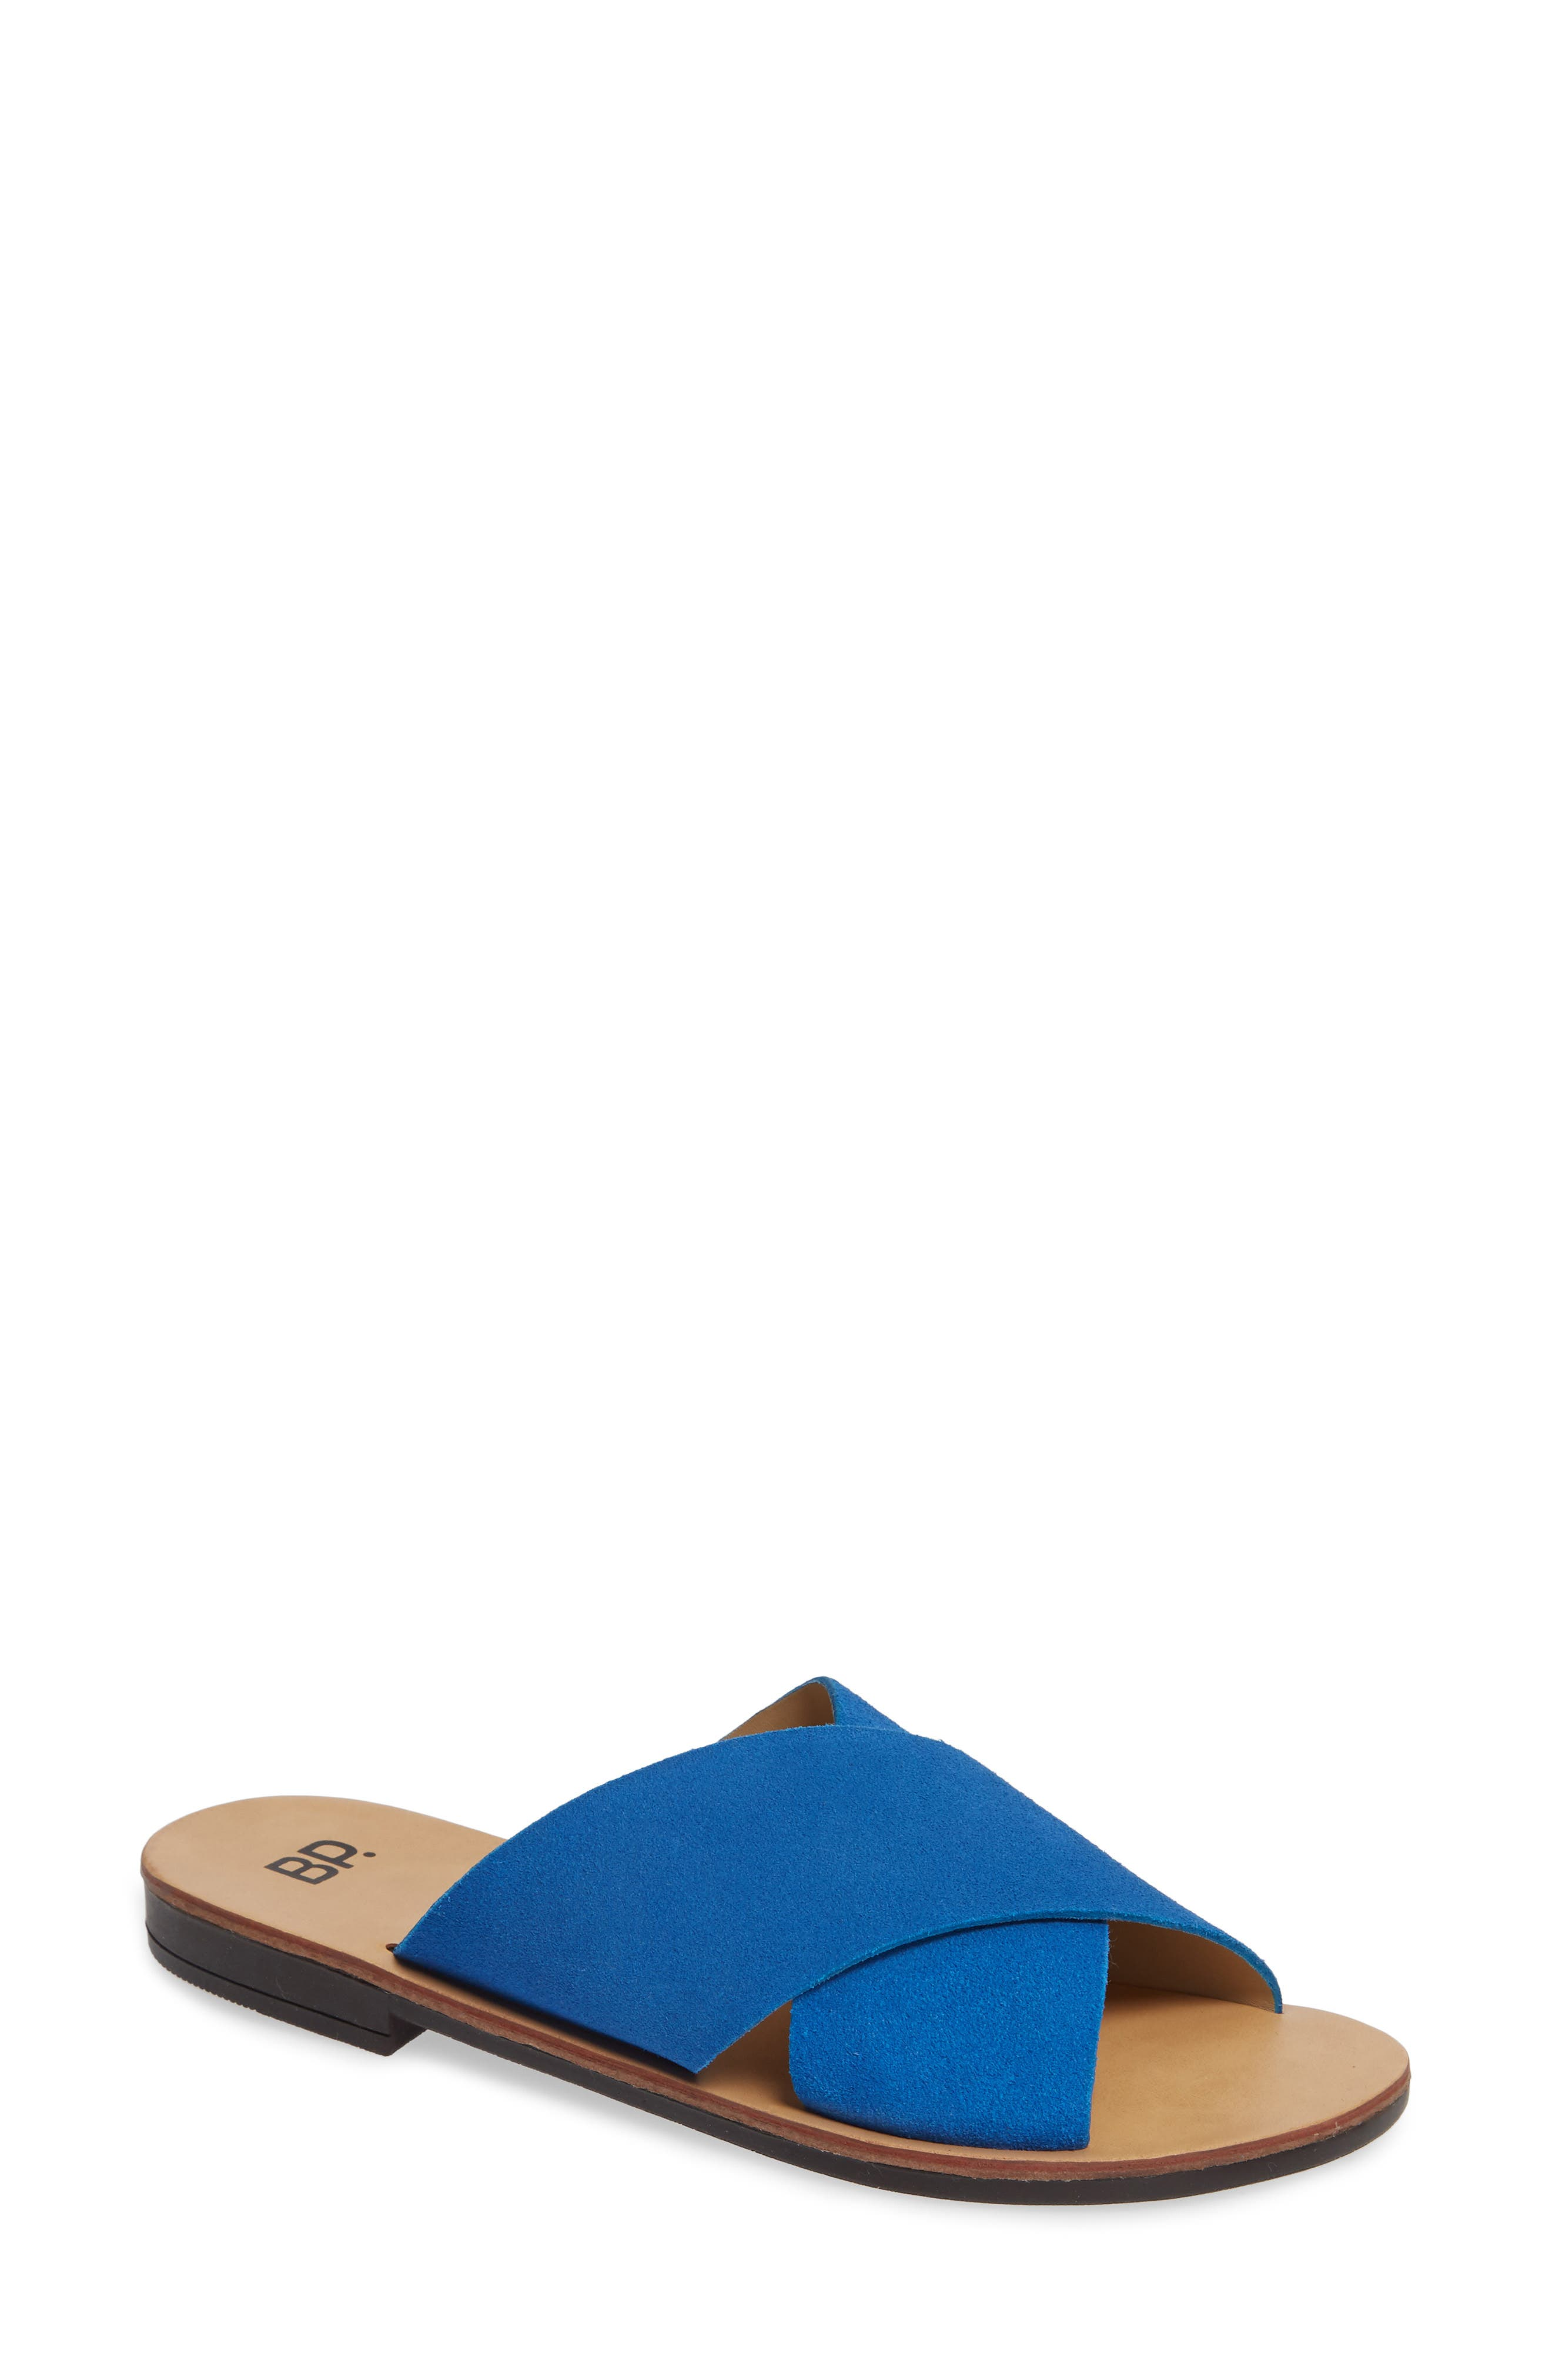 Twist Cross Strap Sandal,                         Main,                         color, 410